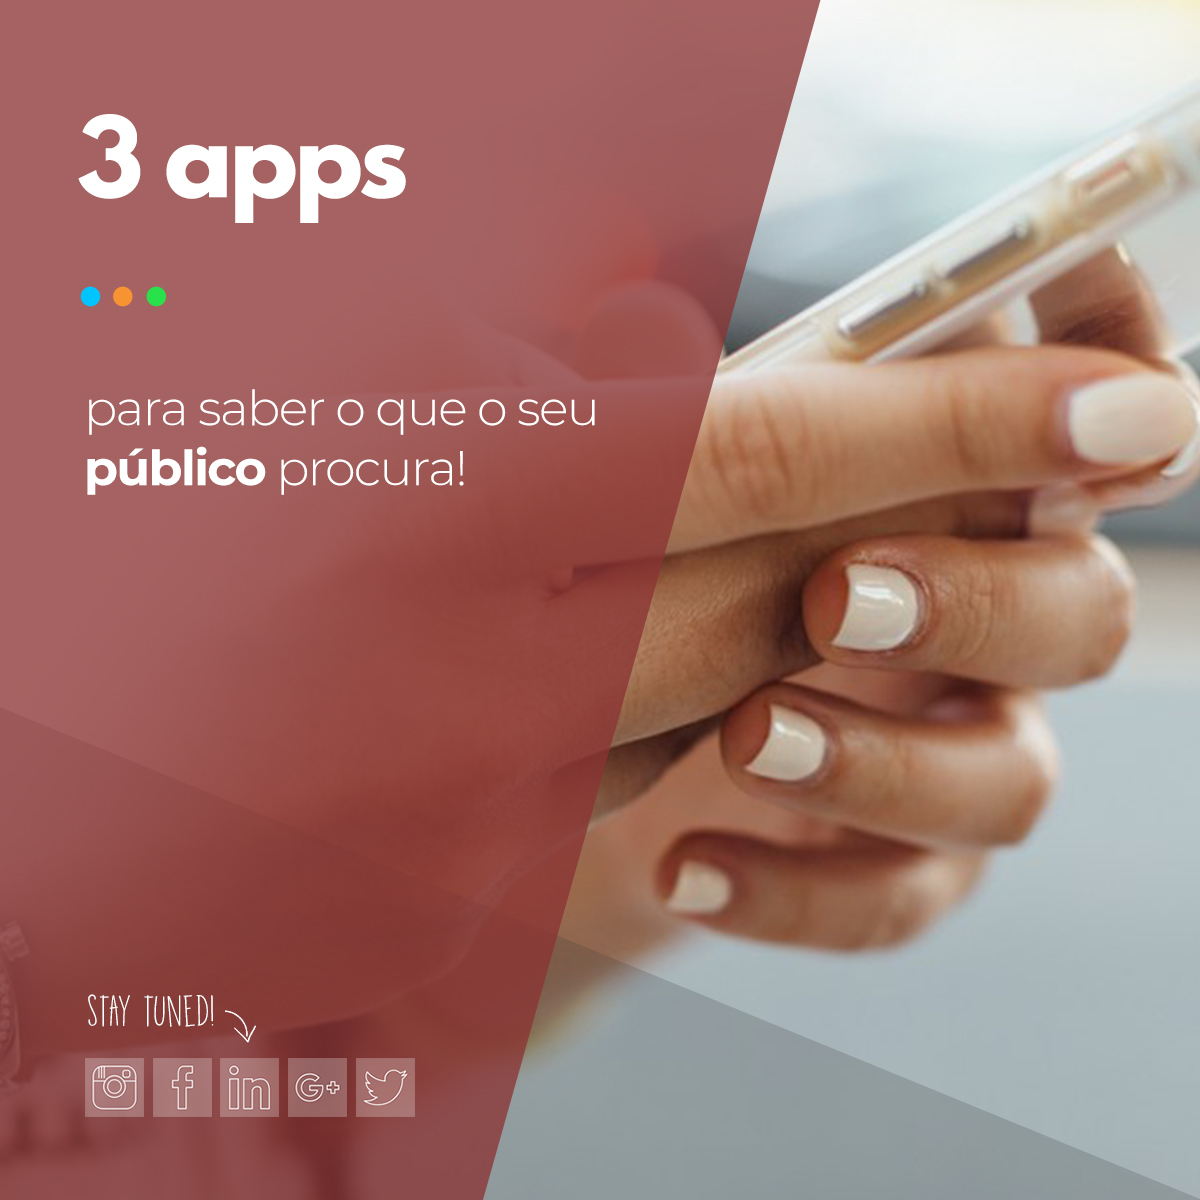 3apps